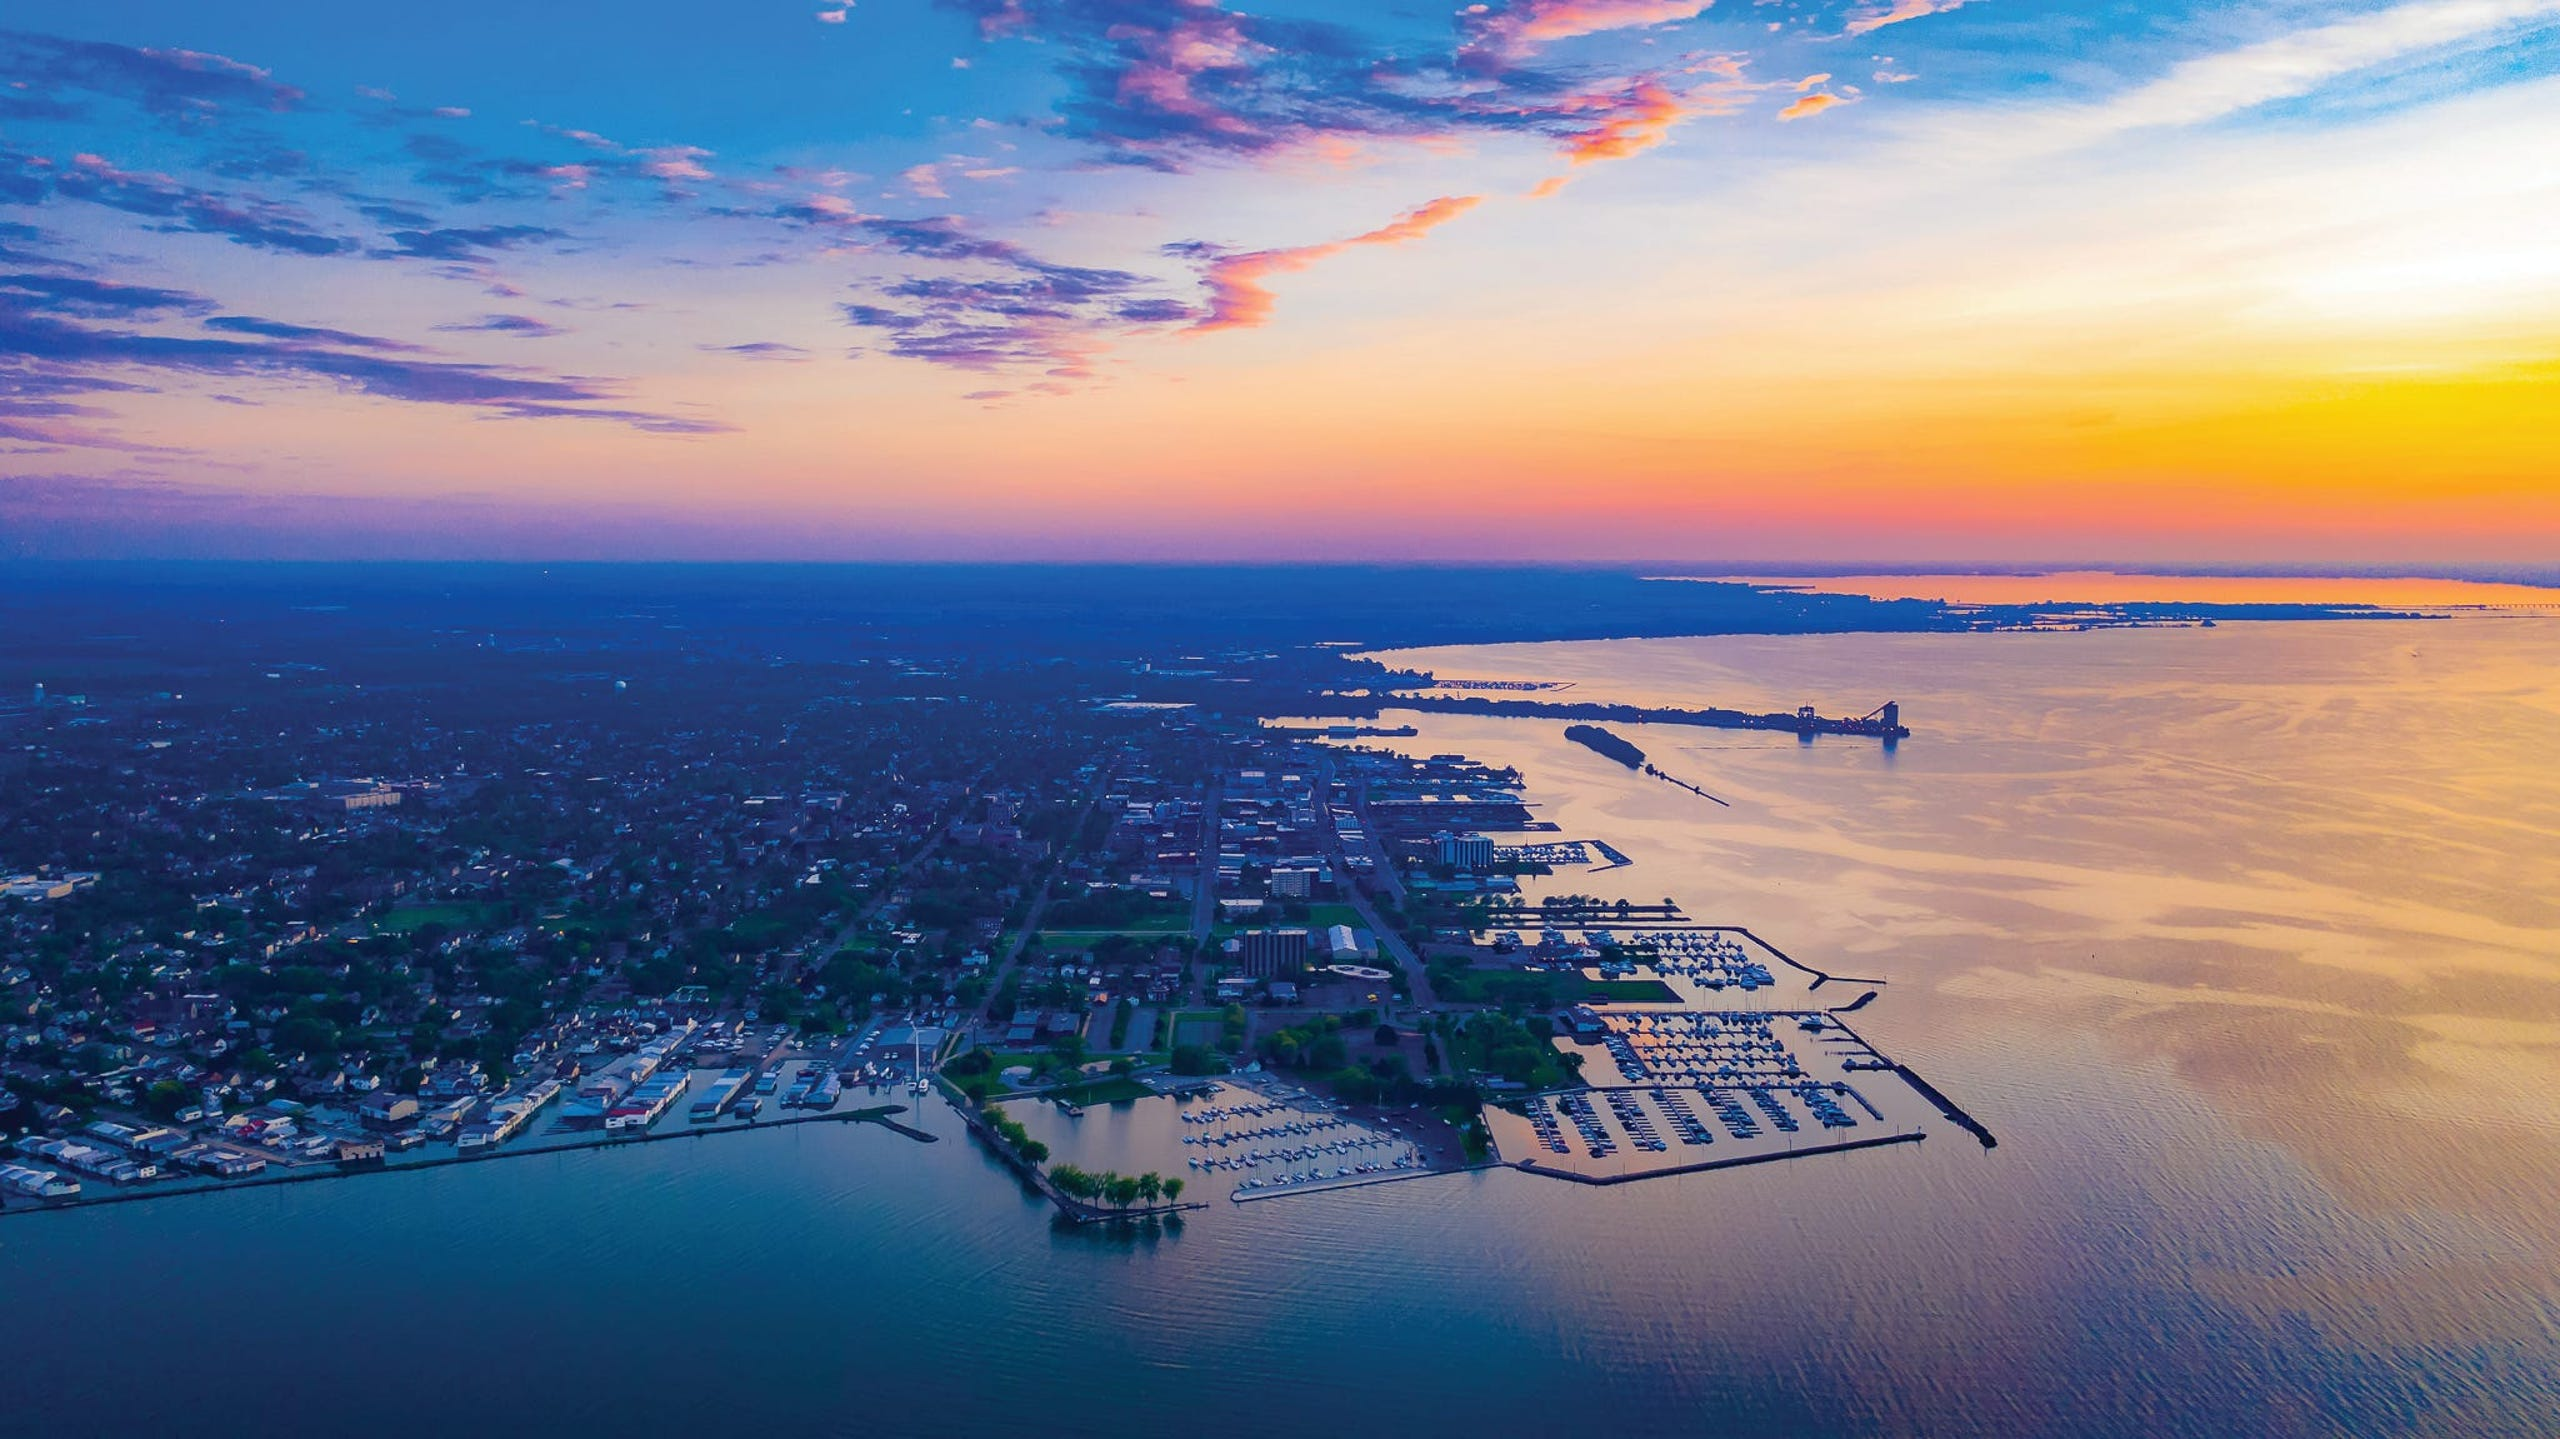 <strong>10. Sandusky, Ohio.</strong> Located midway between Cleveland and Toledo, Sandusky is one of Ohio&rsquo;s best lakeside escapes. Visitors will find a revitalized downtown district with plenty of shopping and dining options, recreation on Lake Erie, wine tasting and some of the world&rsquo;s best roller coasters at Cedar Point.